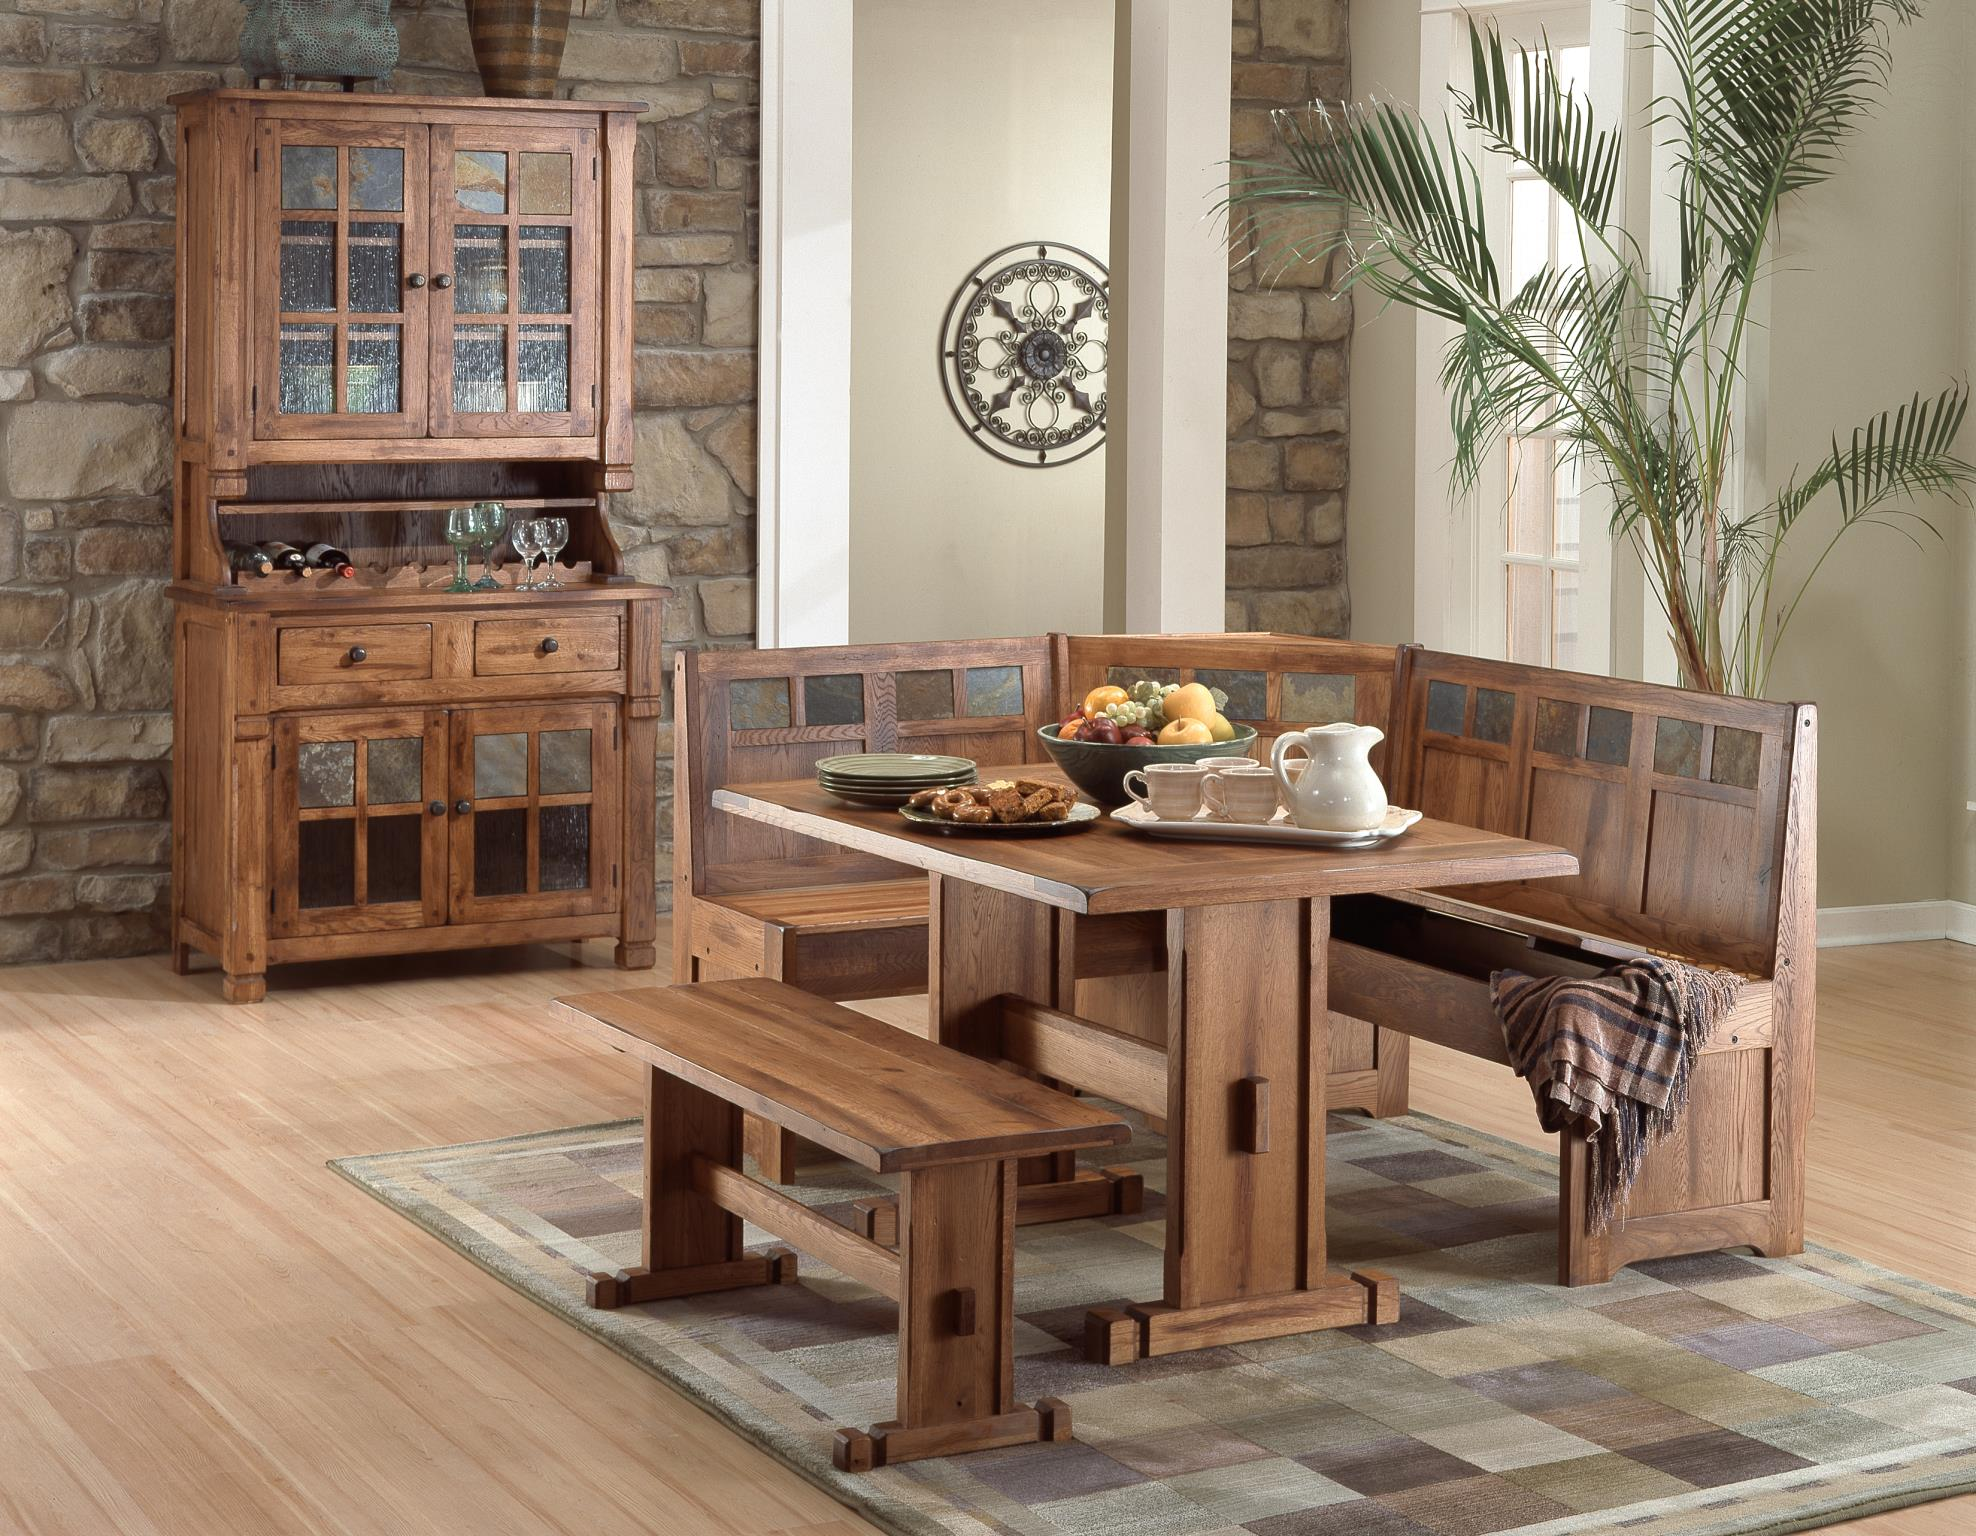 Sedona Breakfast Nook Image